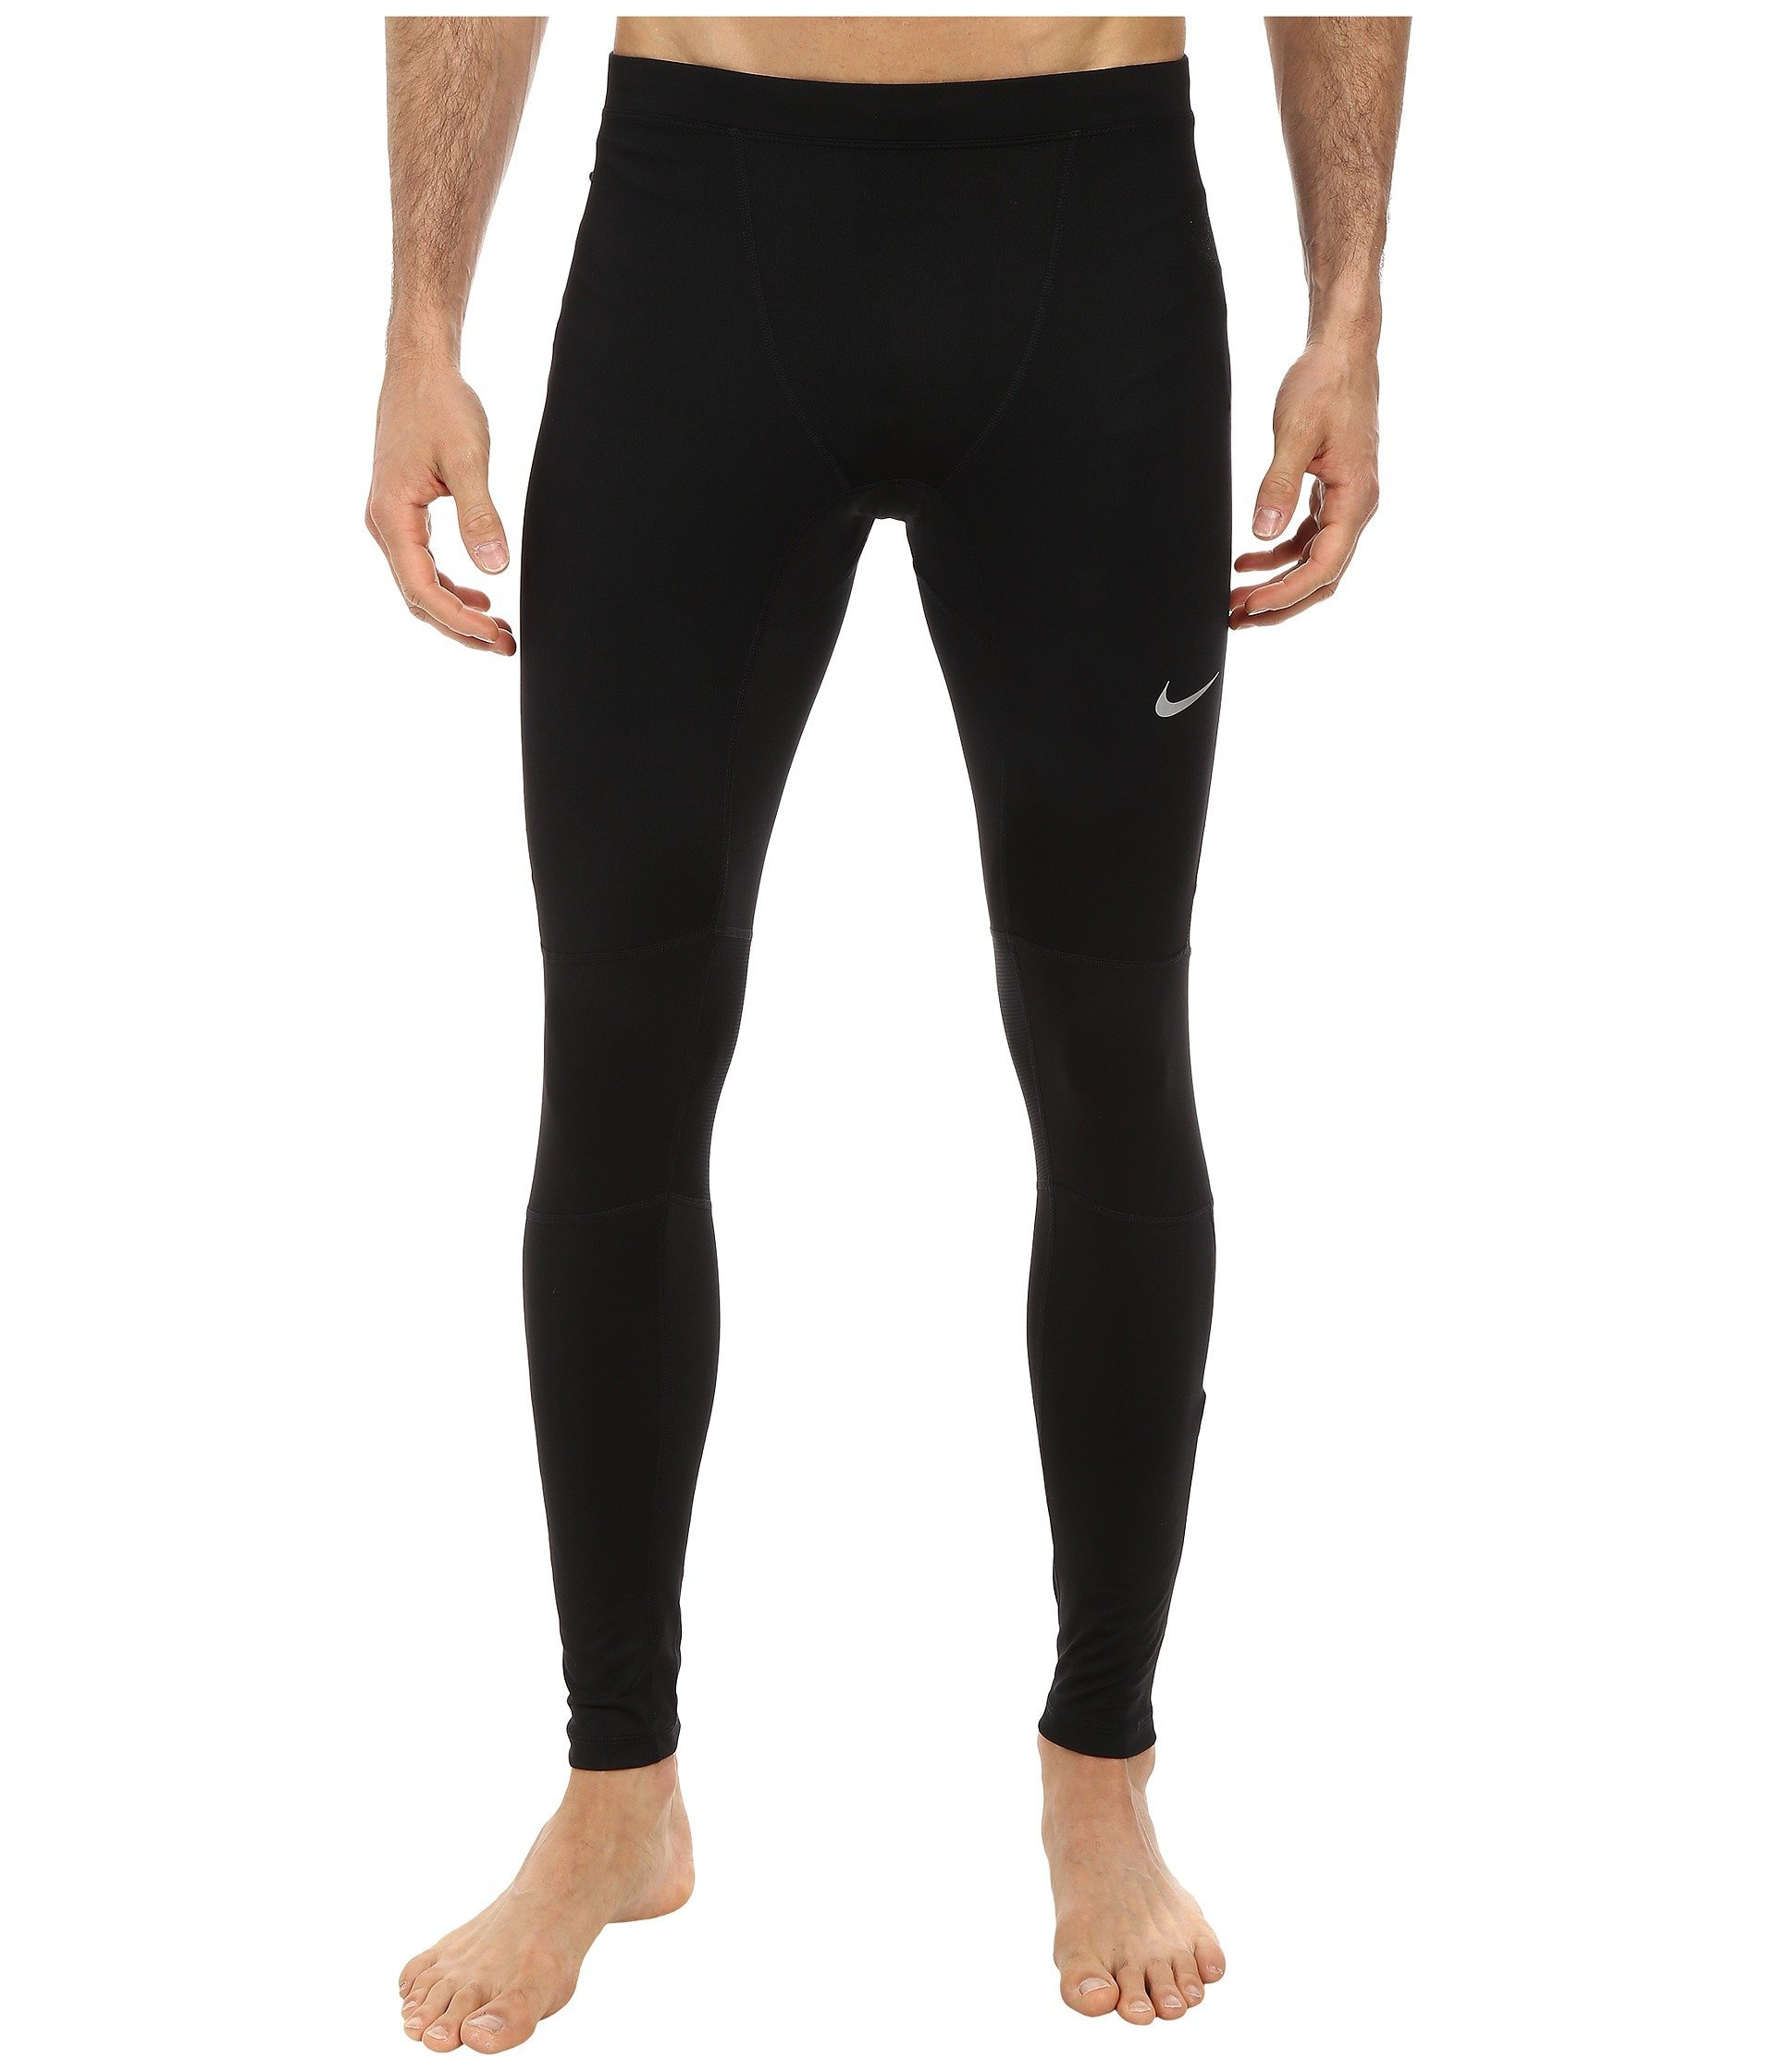 Nike Men's Power Essential Running Tights by Nike (Image #3)